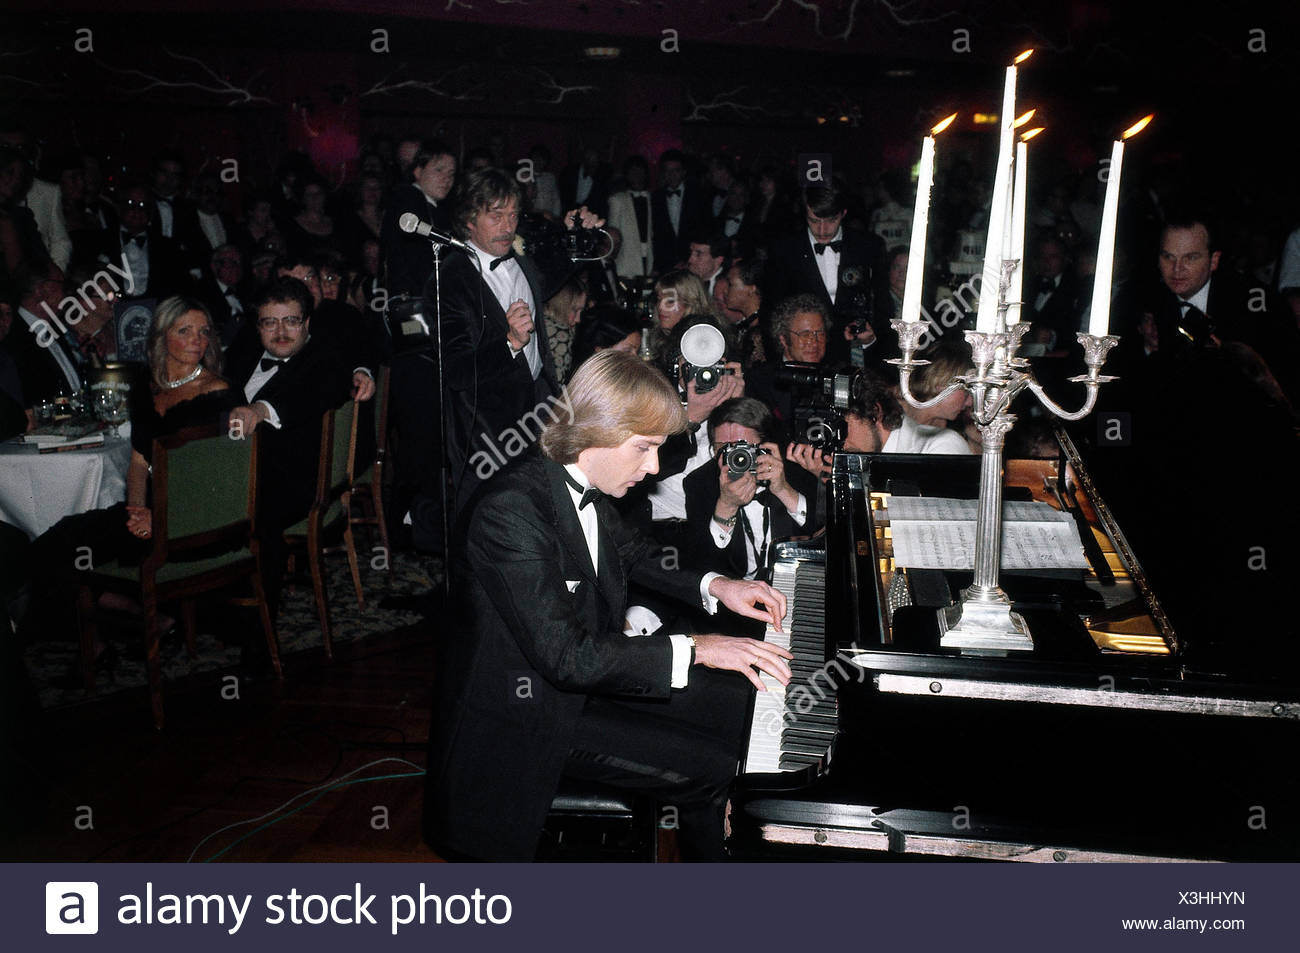 Claydermann, Richard, * 28.12.1953, French pianist, half length, performing, 1983, grand piano, playing, musician, concert, film - Stock Image